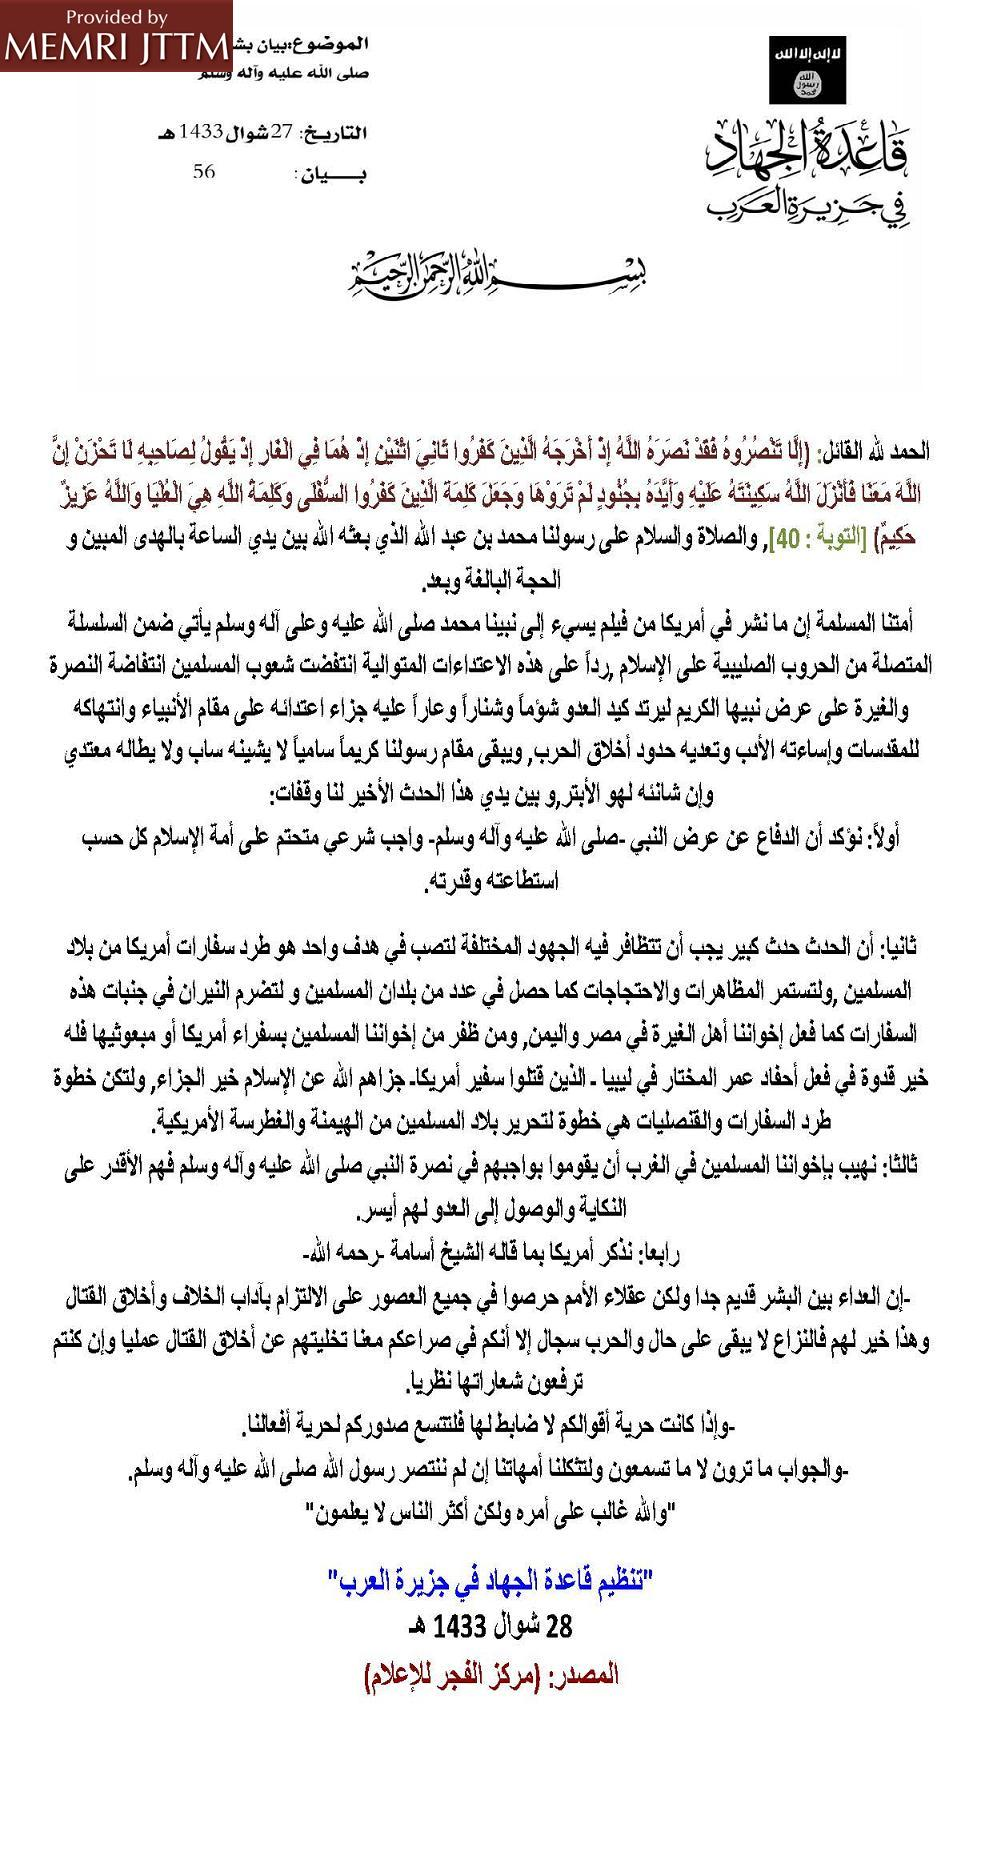 AQAP Praises Benghazi Attack, Calls For Concerted Effort To Attack U.S. Diplomats, Encourages Muslims In West To Carry Out Terrorist Attacks